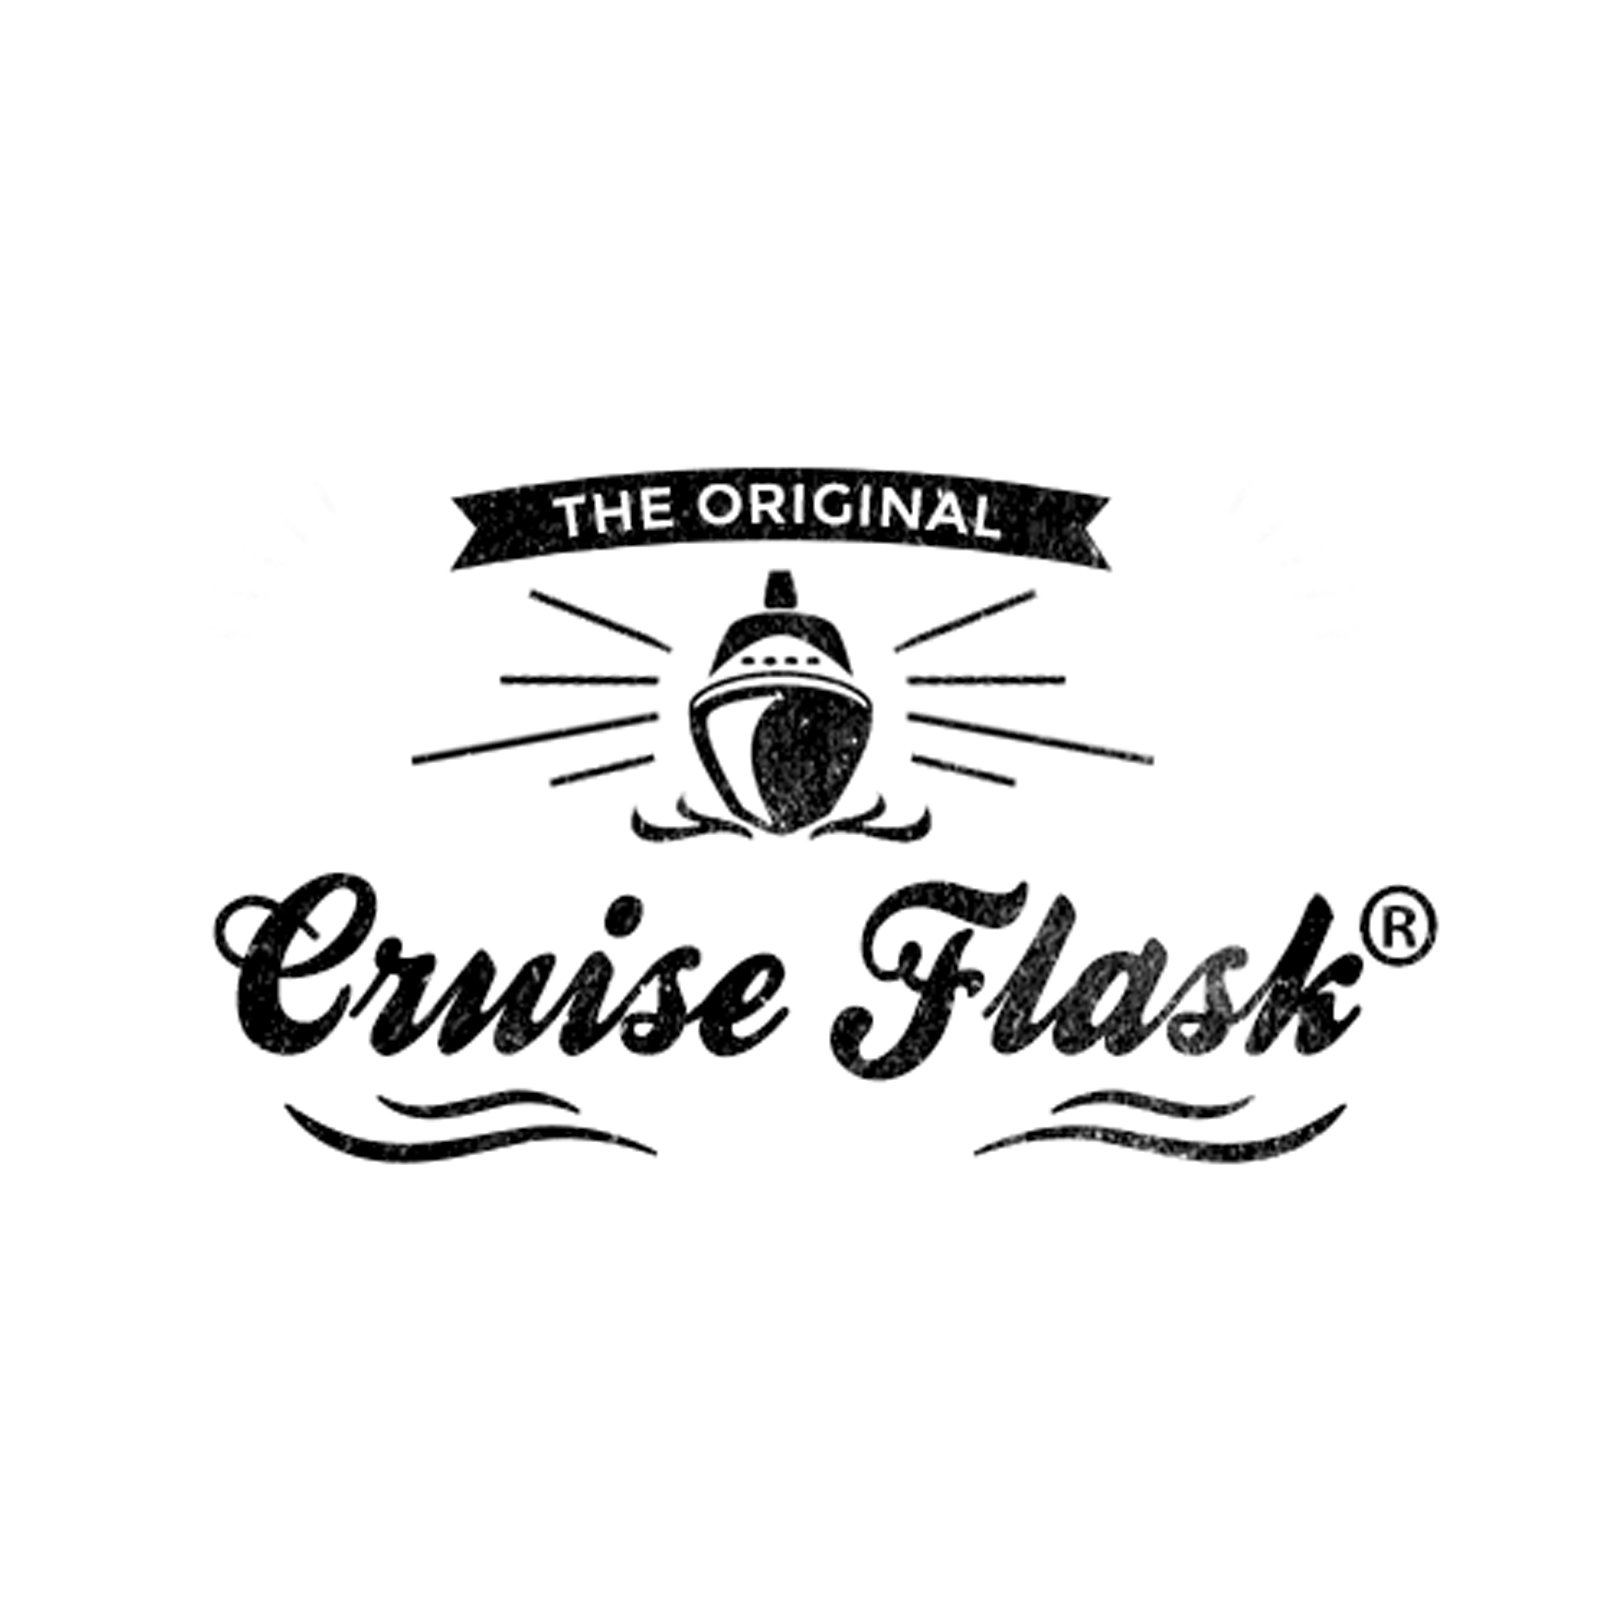 Concealable And Reusable Cruise Flask Kit - Sneak Alcohol Anywhere - 3 x 32 oz + 3 x 16 oz + 1 funnel by Cruise Flask® (Image #4)